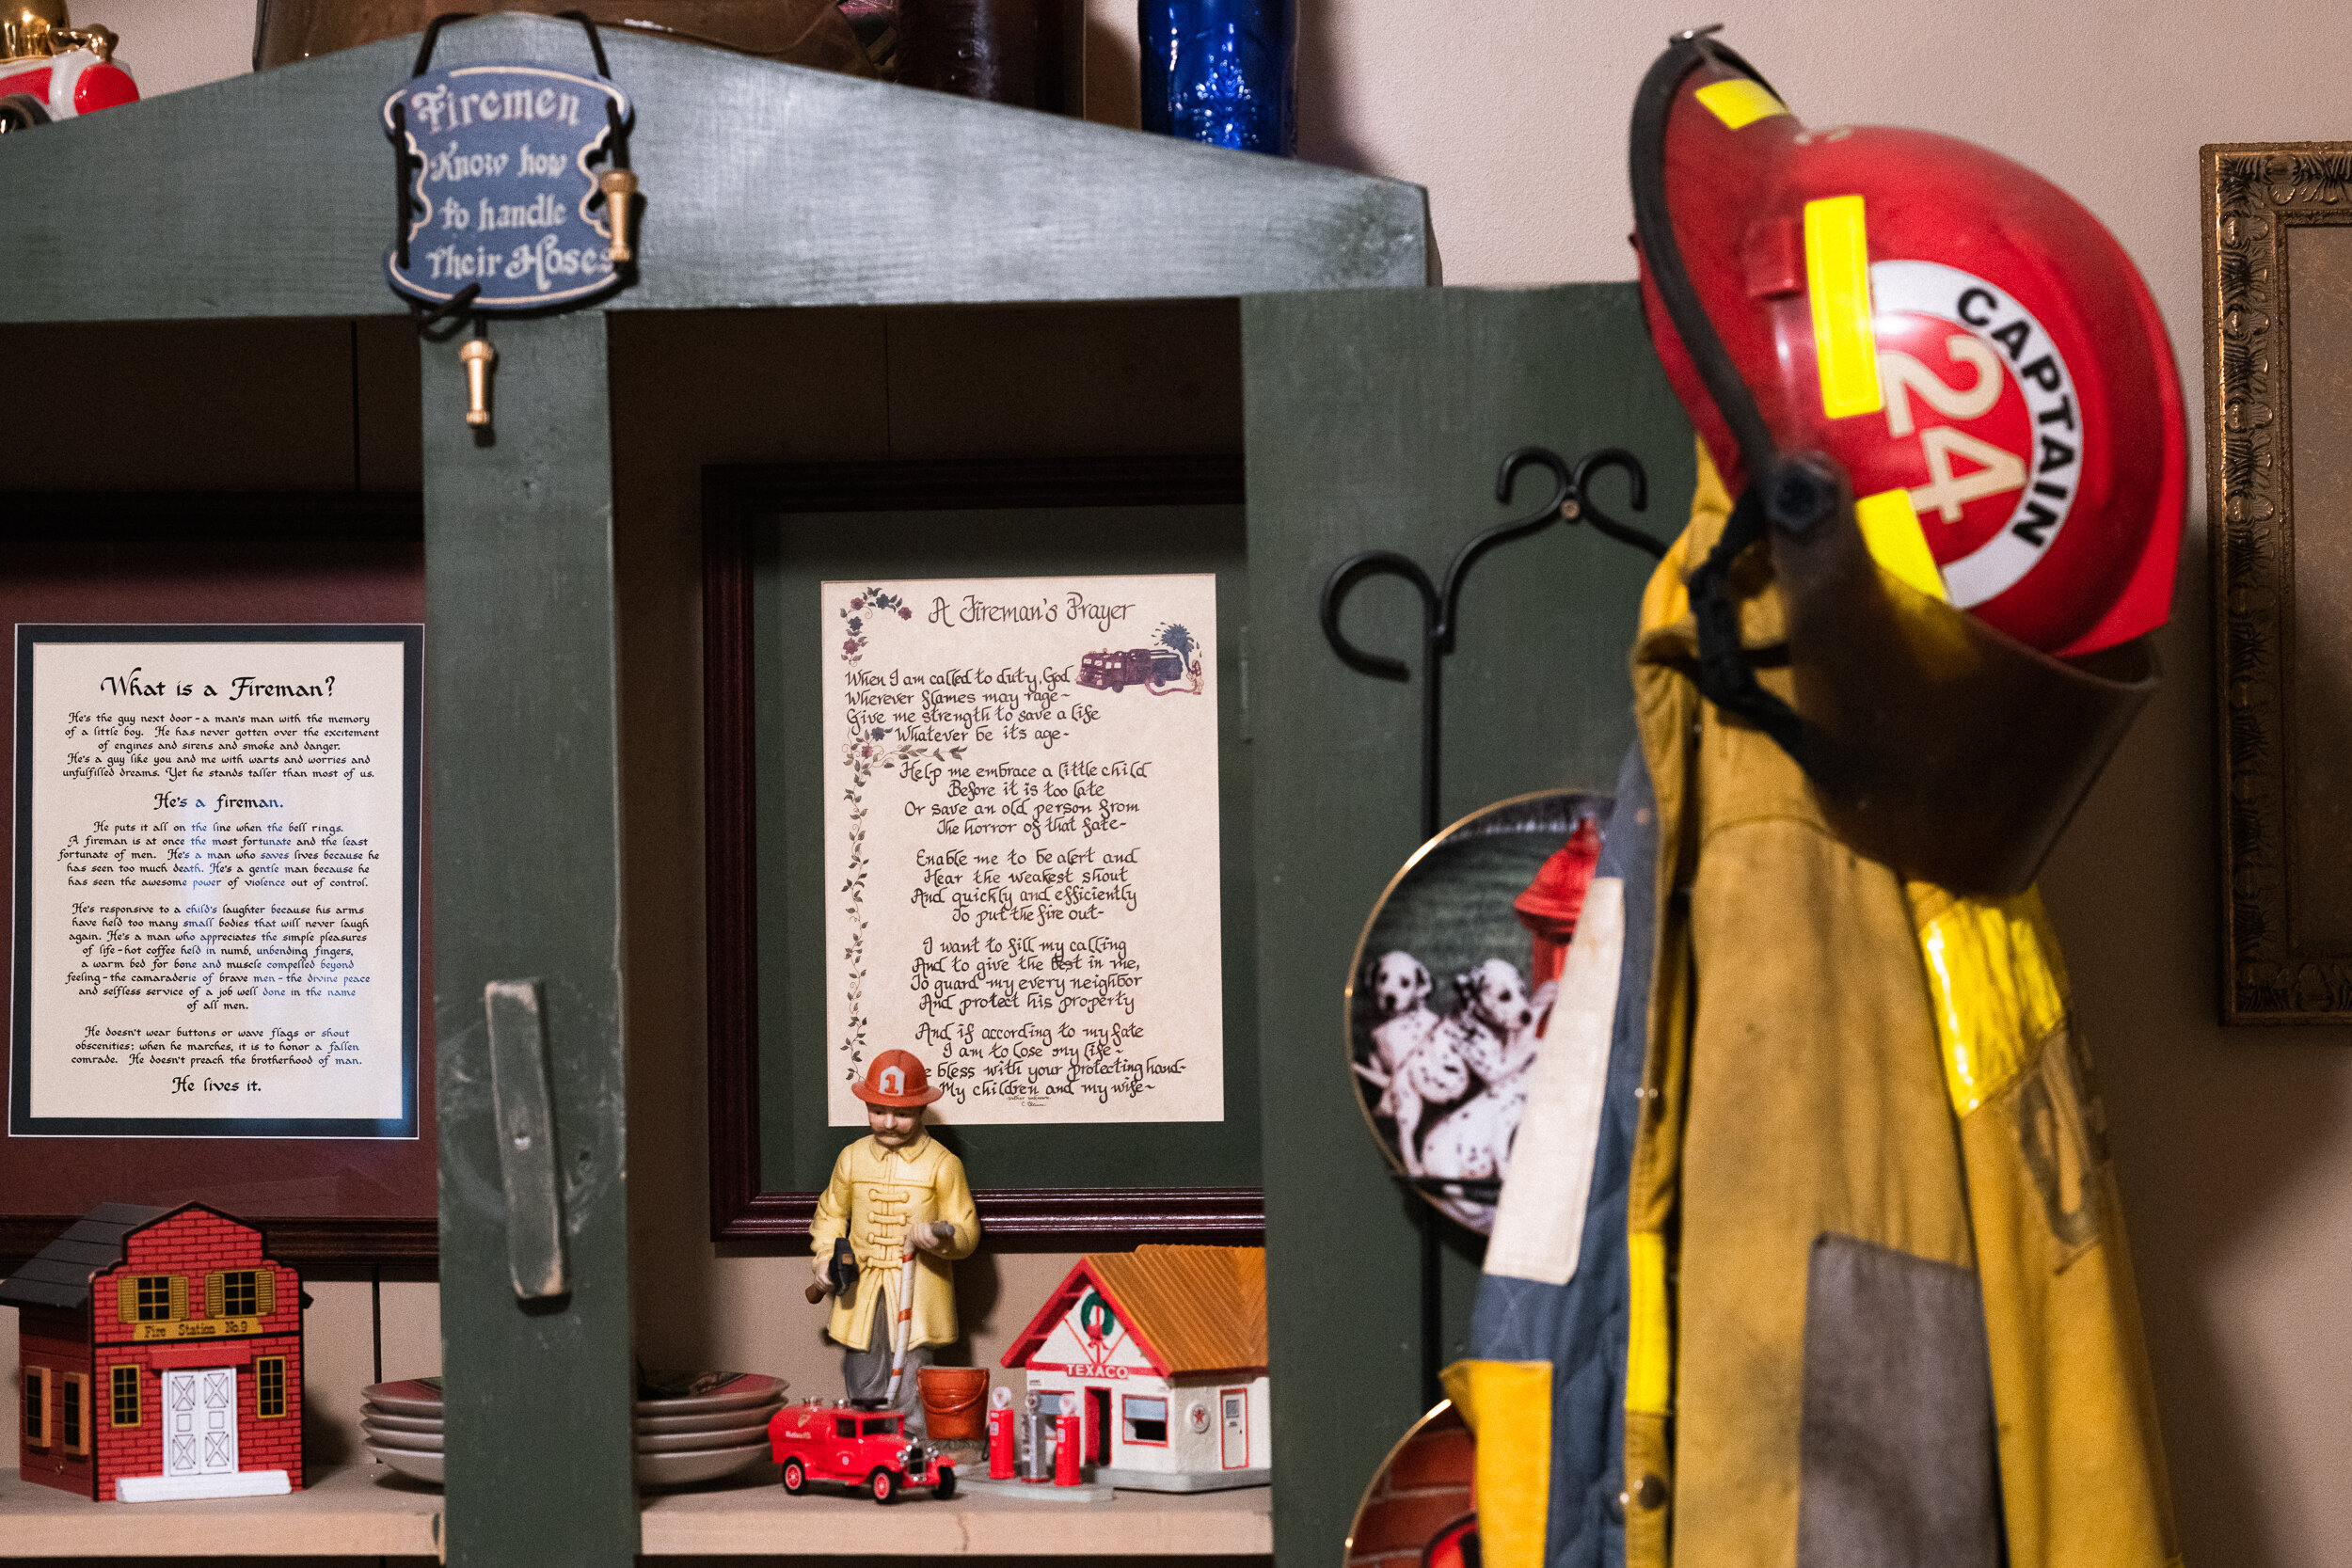 Clark collects firefighting memorabilia which he keeps displayed in the family home.